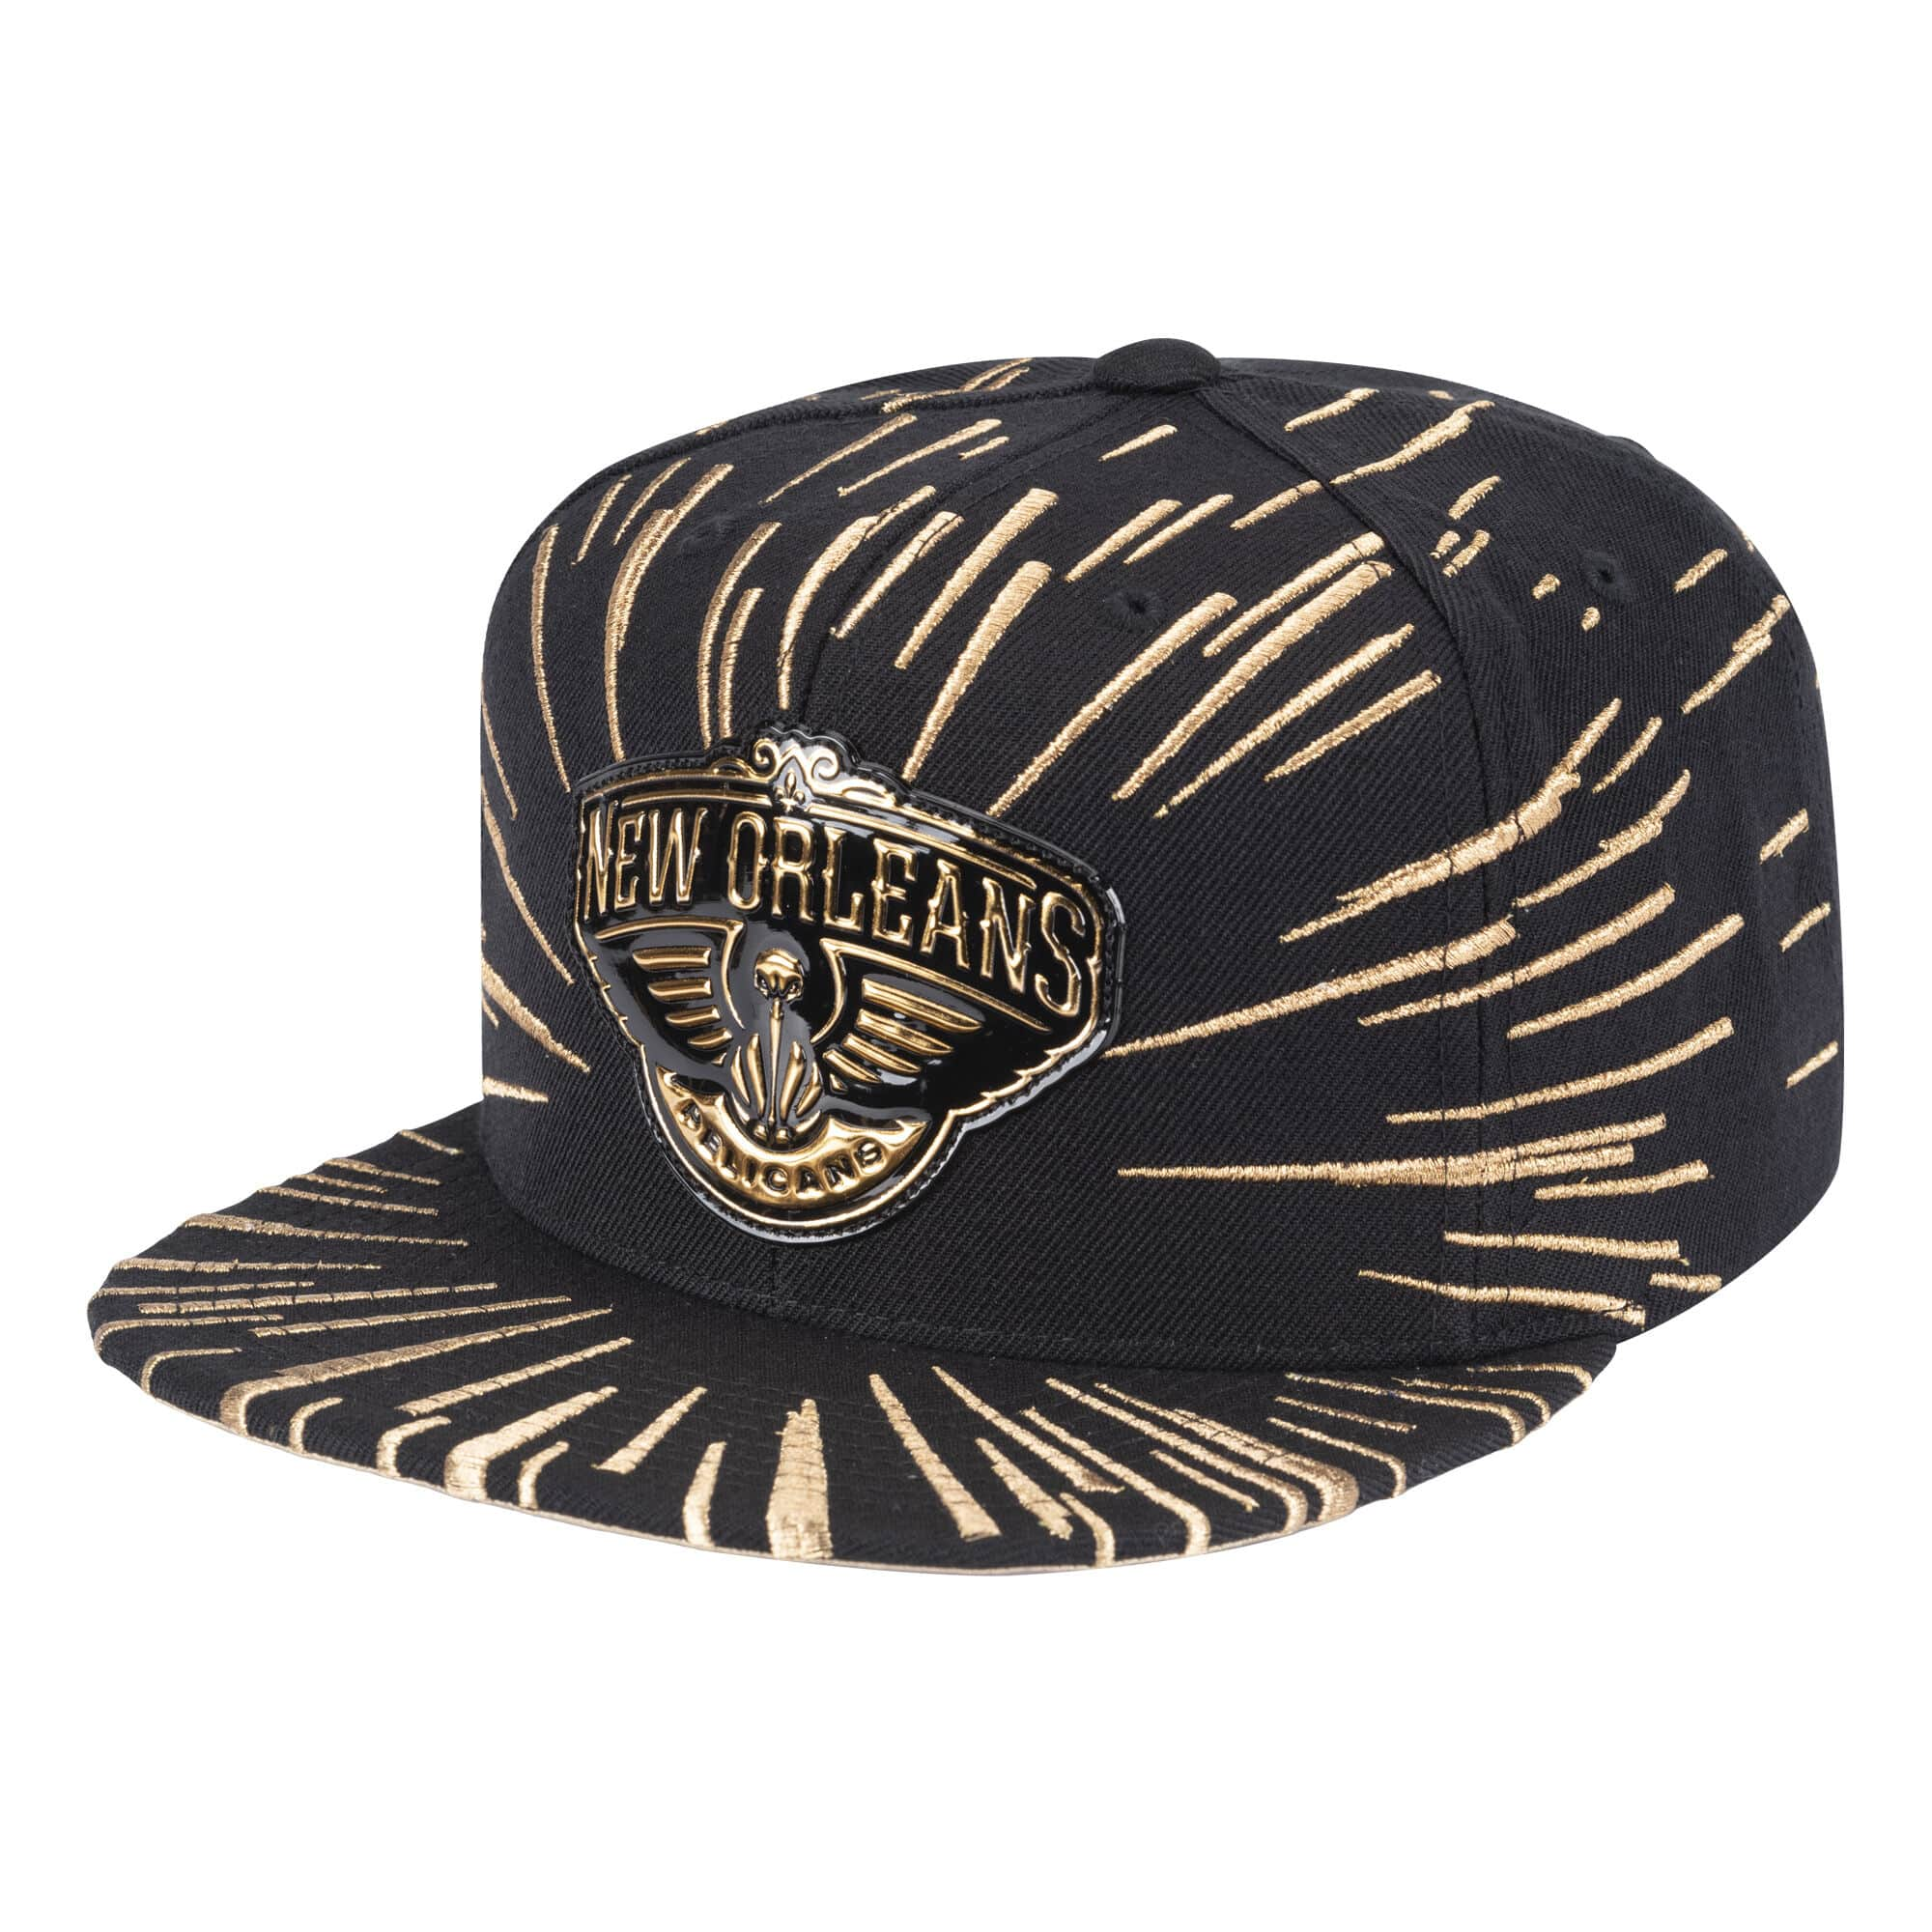 Nucleo Gold Snapback New Orleans Pelicans